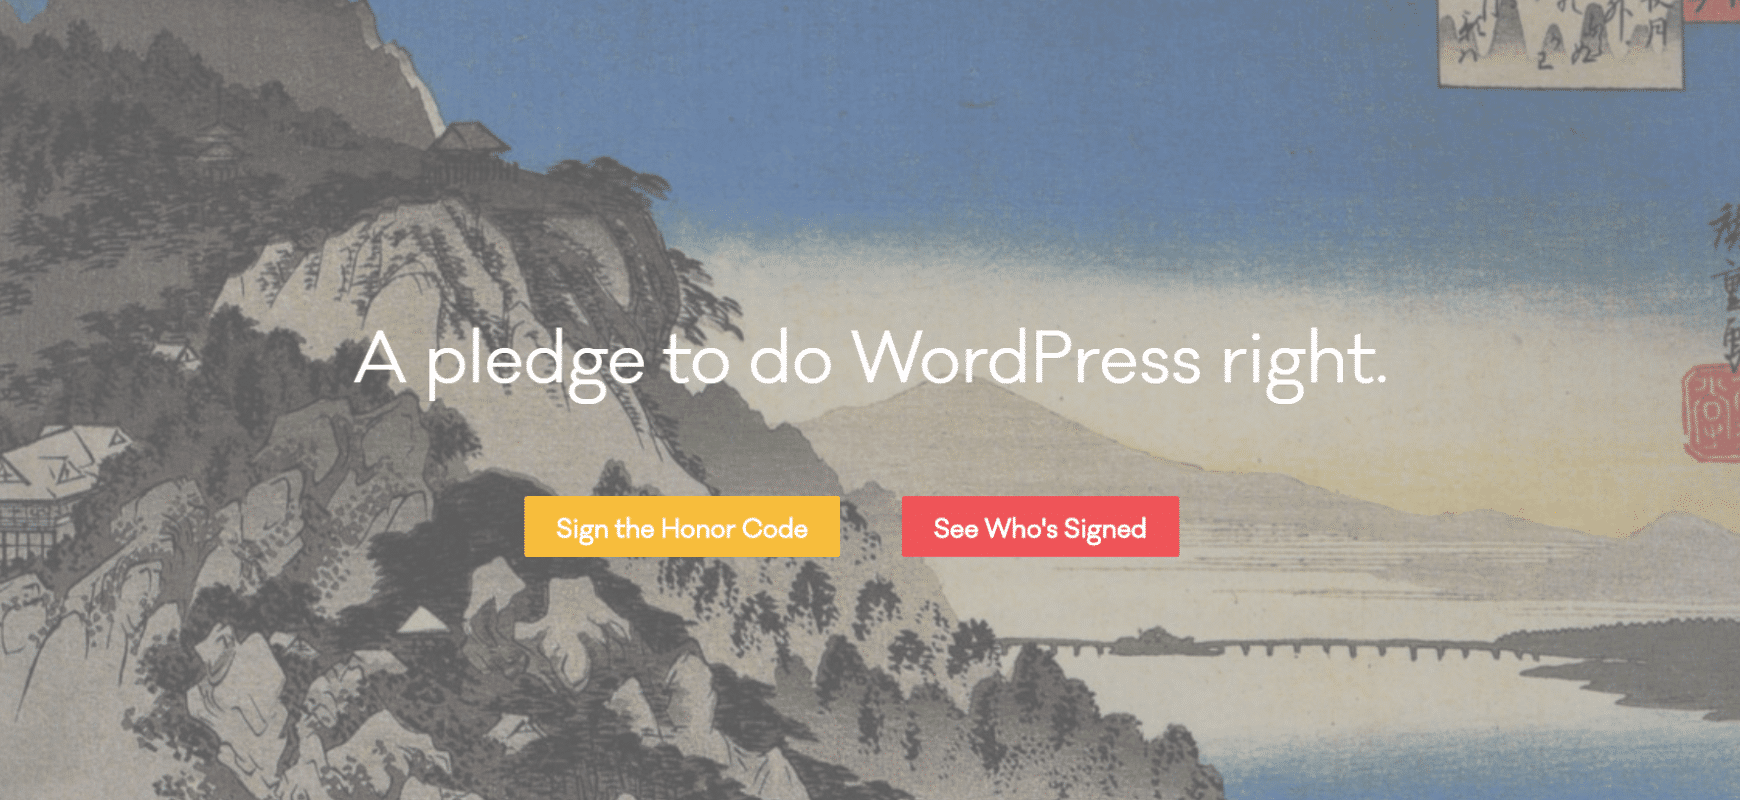 You Can Now Sign the WordPress Developer Honor Code